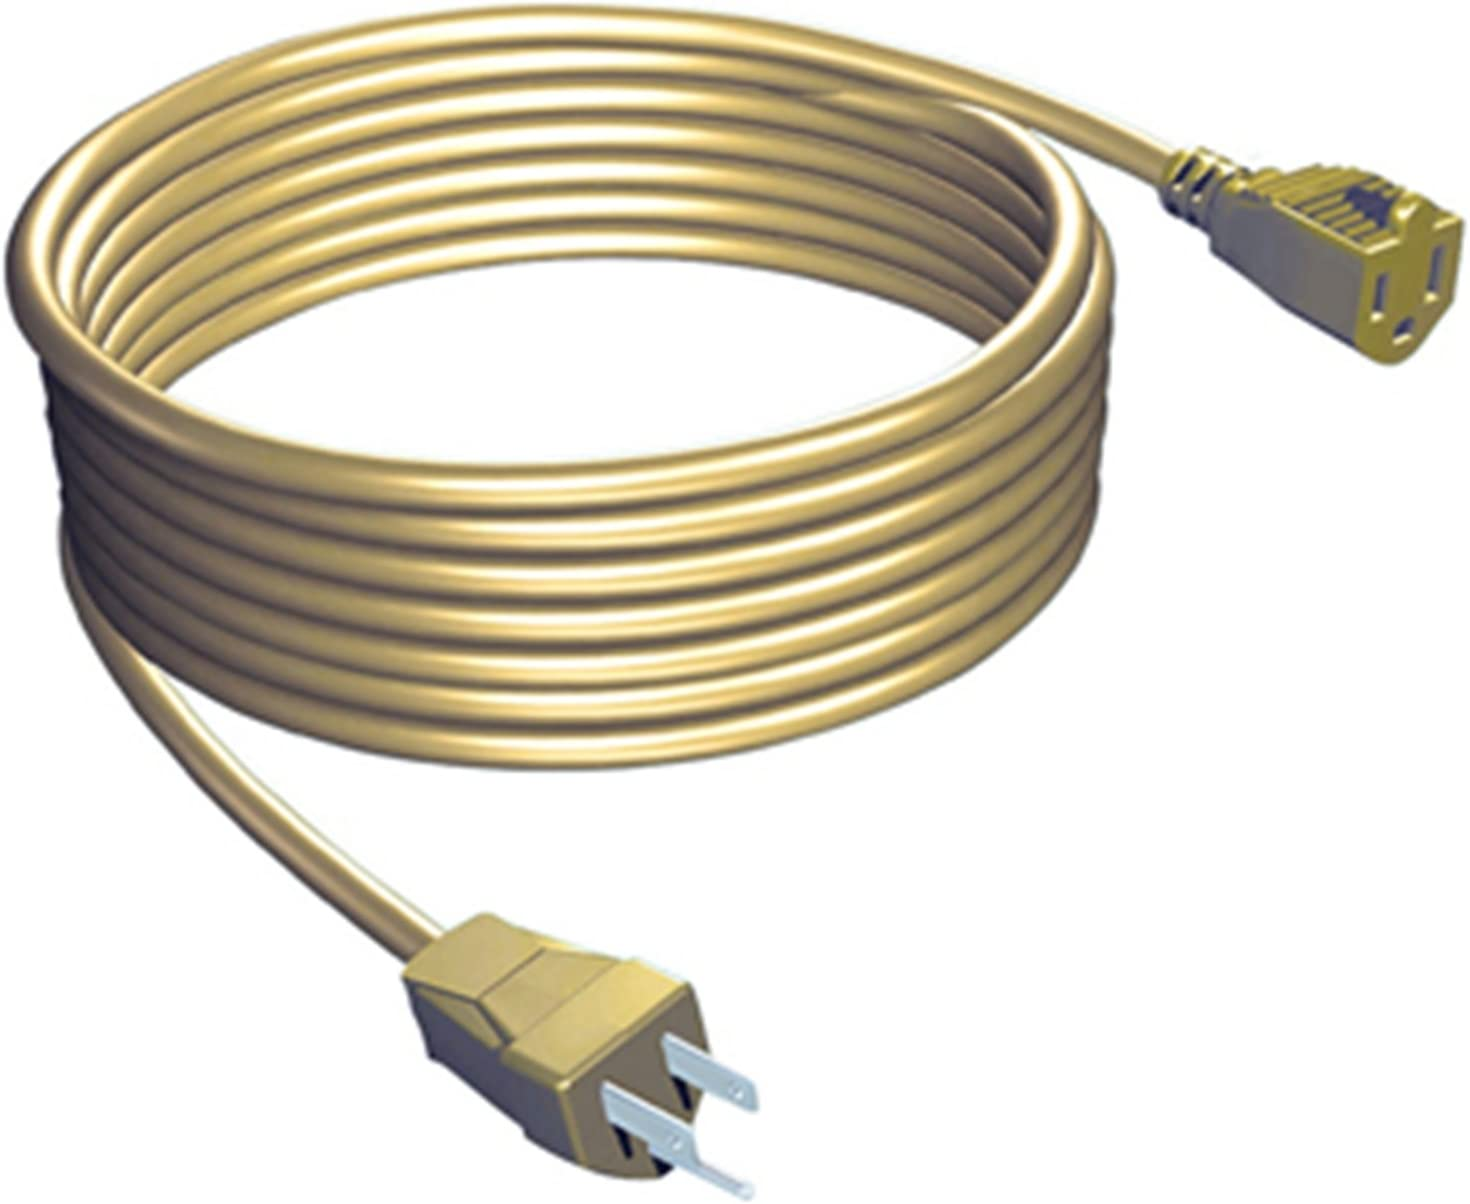 Stanley 33405 Grounded Outdoor Extension Power Cord, 40-Feet, Beige